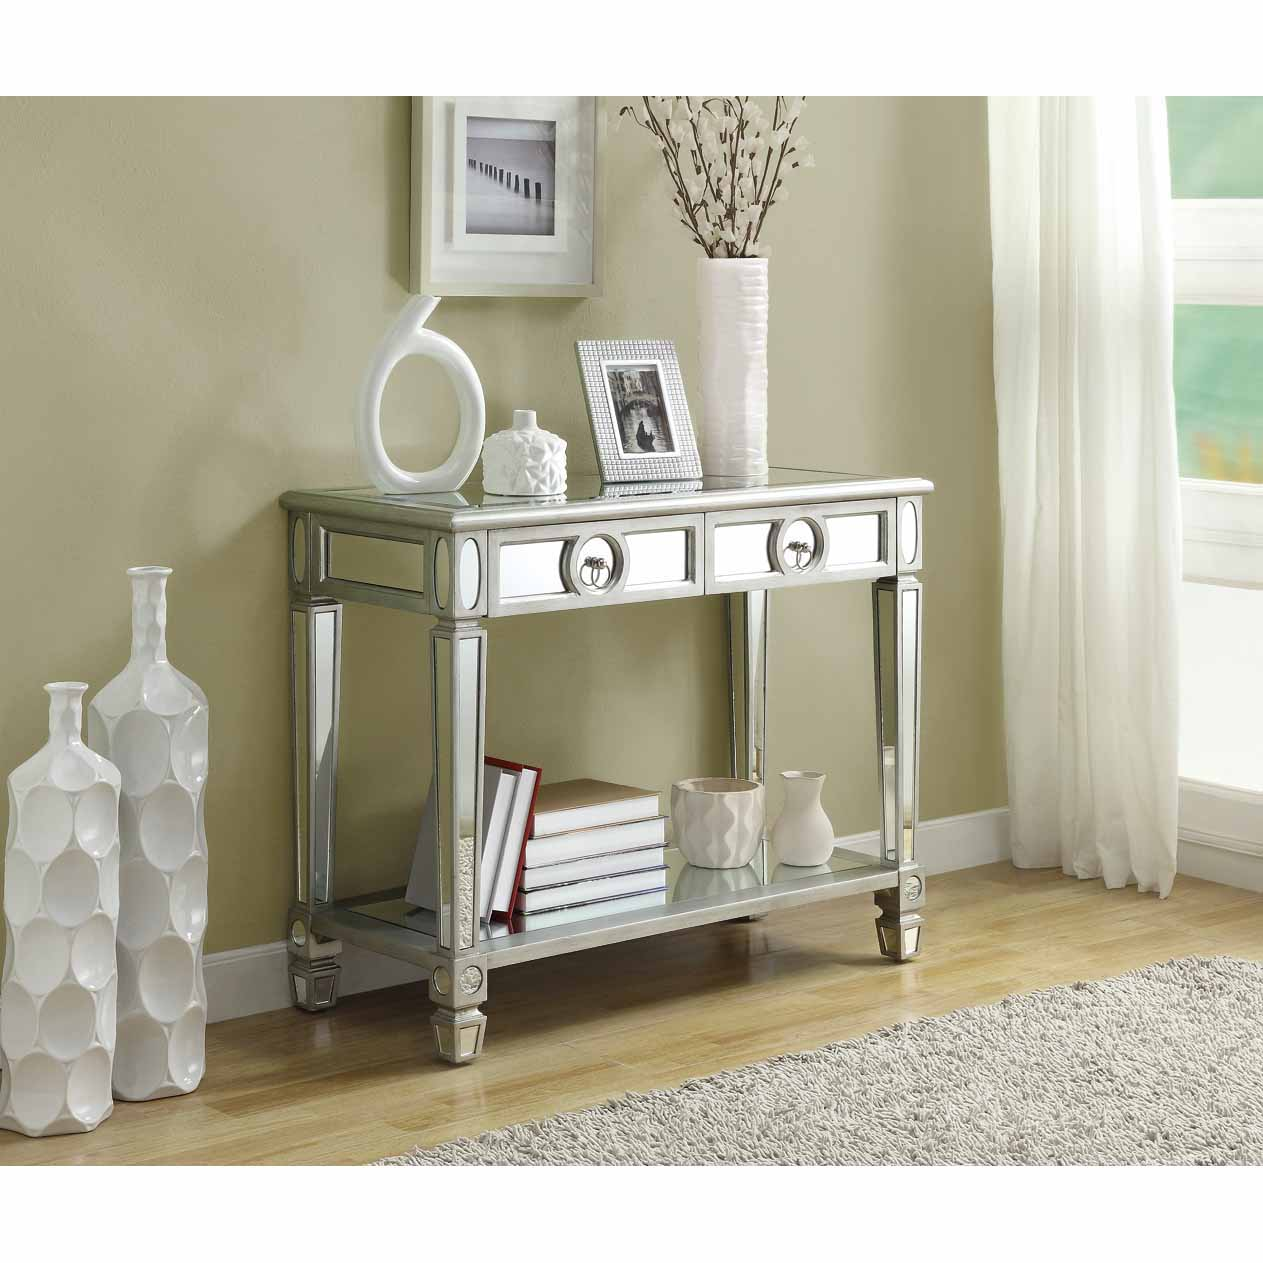 Mirrored 38-inch Sofa Console Table With Two Drawers